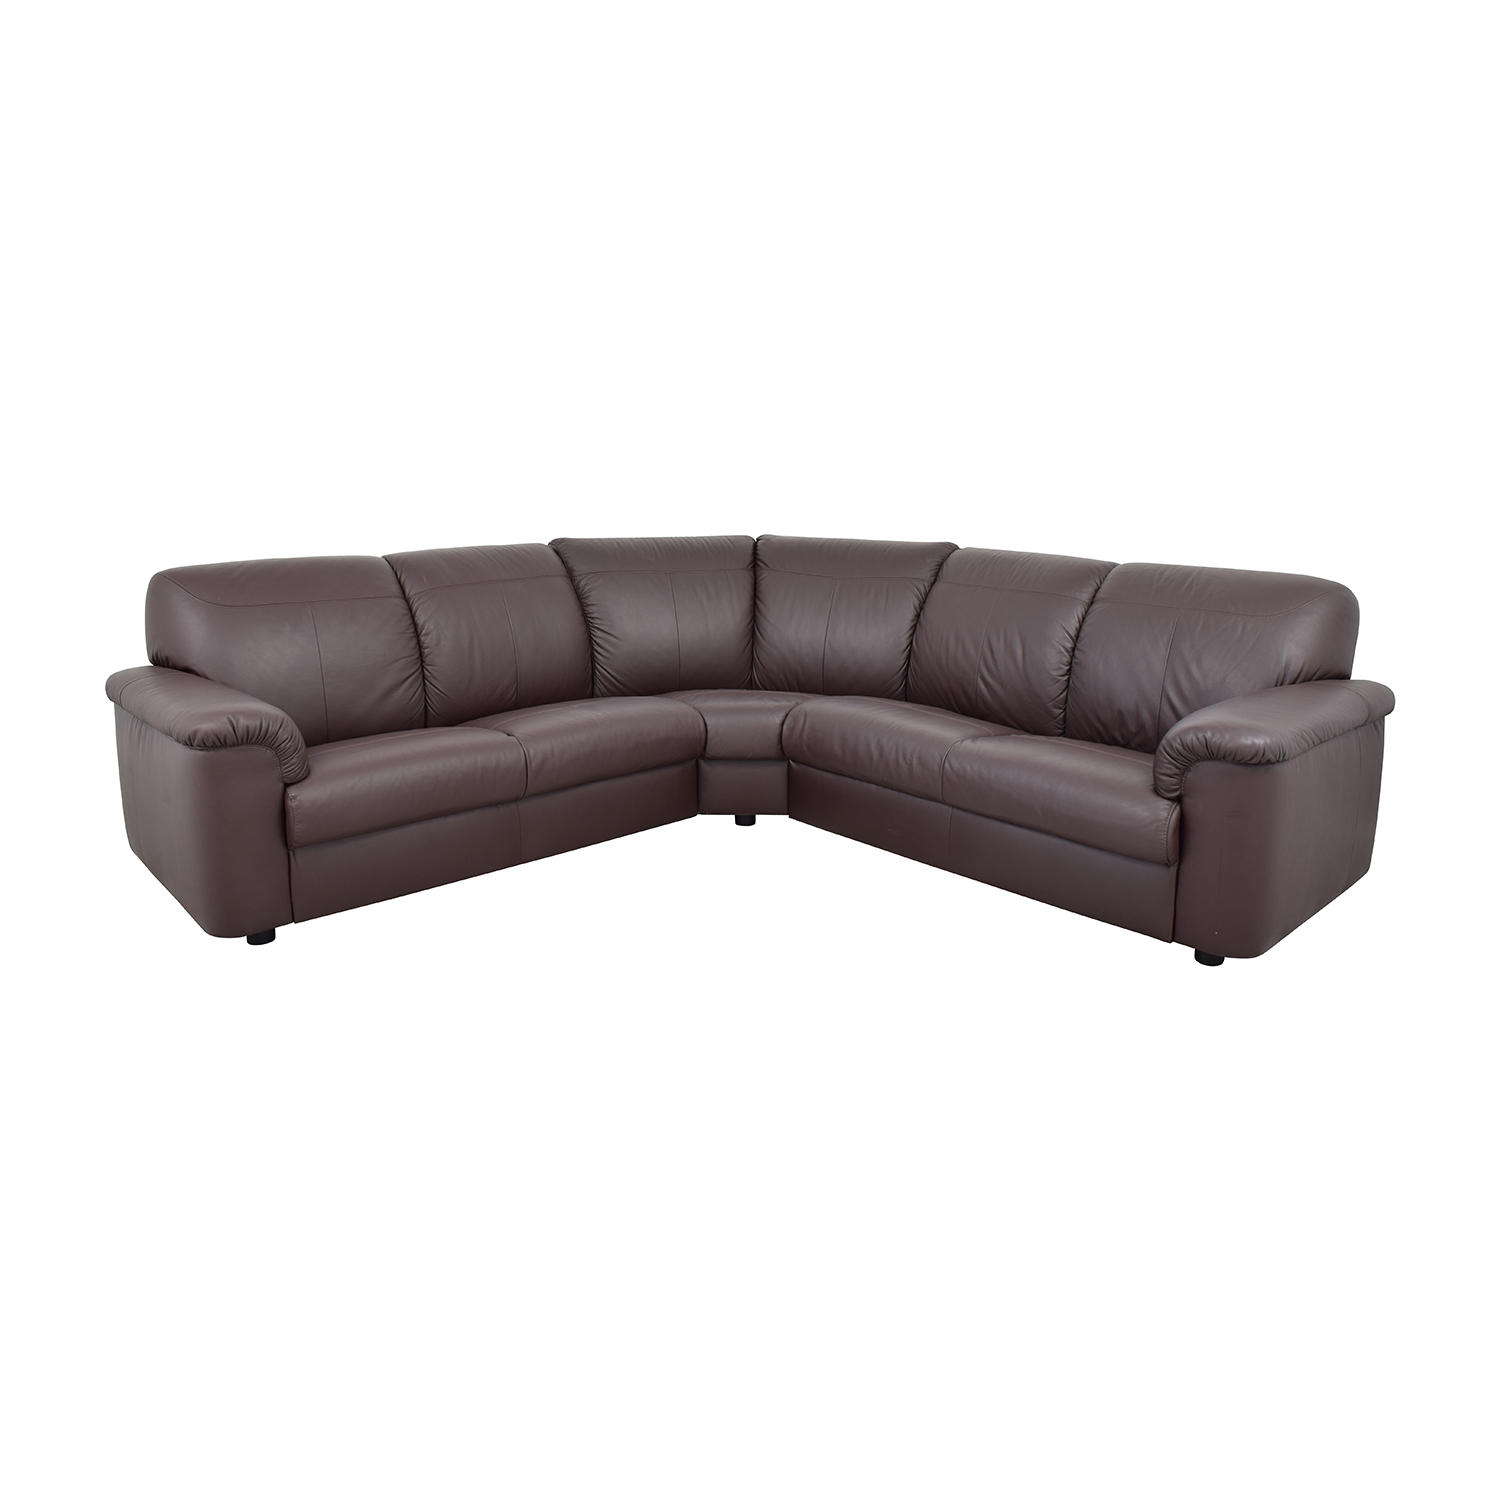 ikea plush brown leather sectional sale. Interior Design Ideas. Home Design Ideas